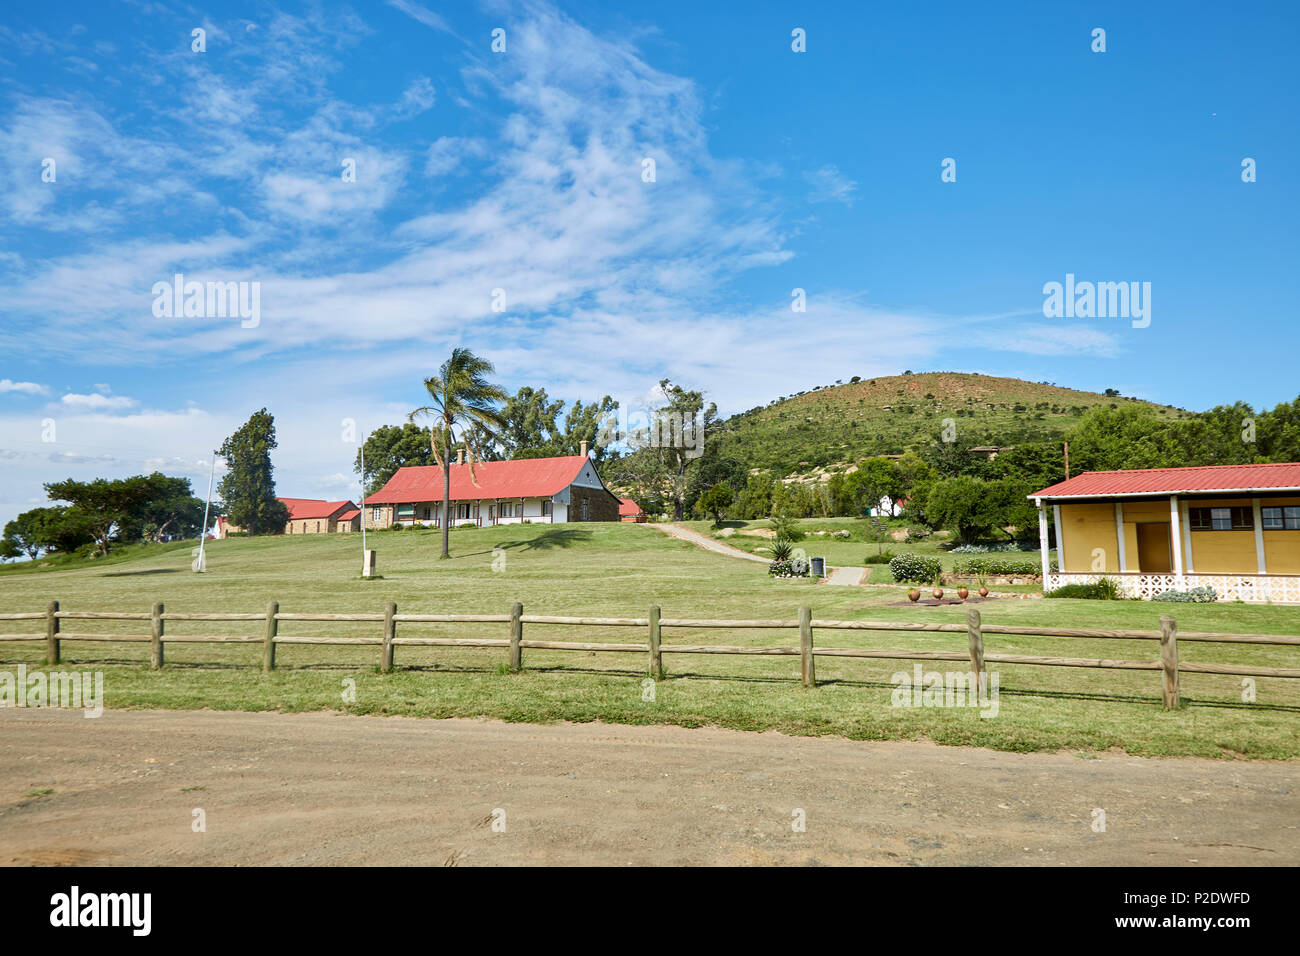 View of Rorke's Drift mission, Natal Province, South Africa - Stock Image